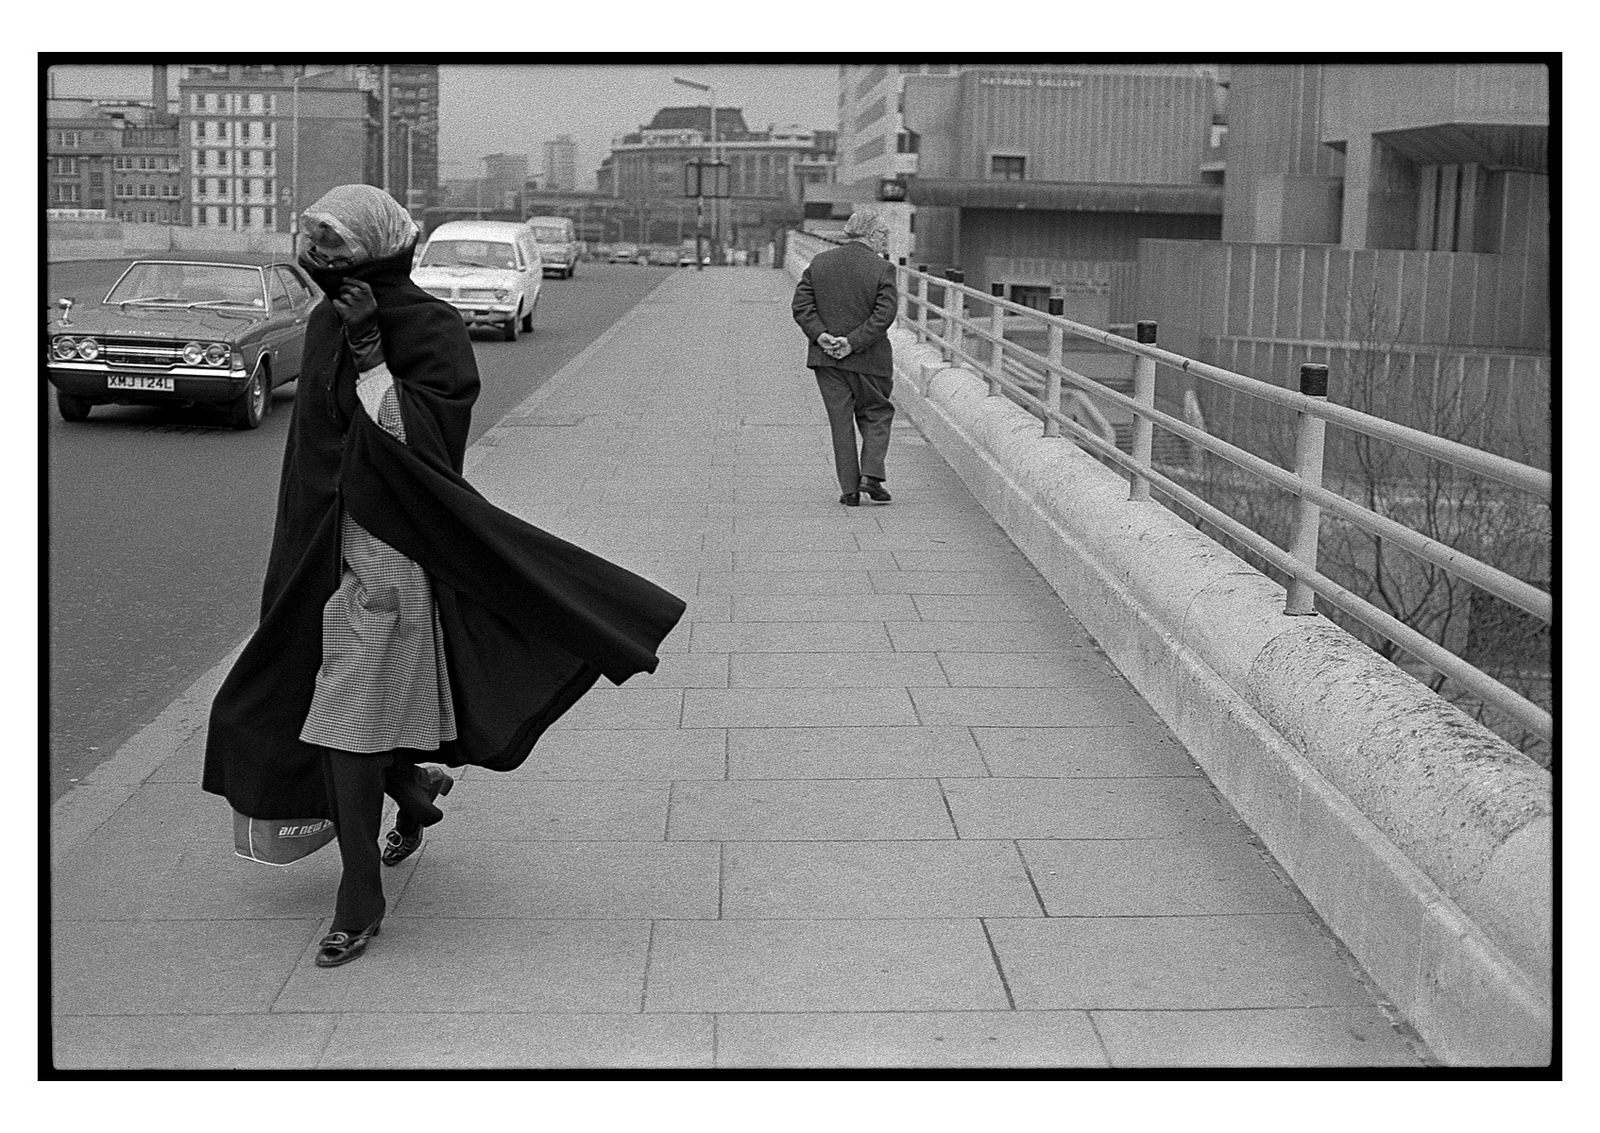 Erik van Straten London 1974 Waterloo Bridge n